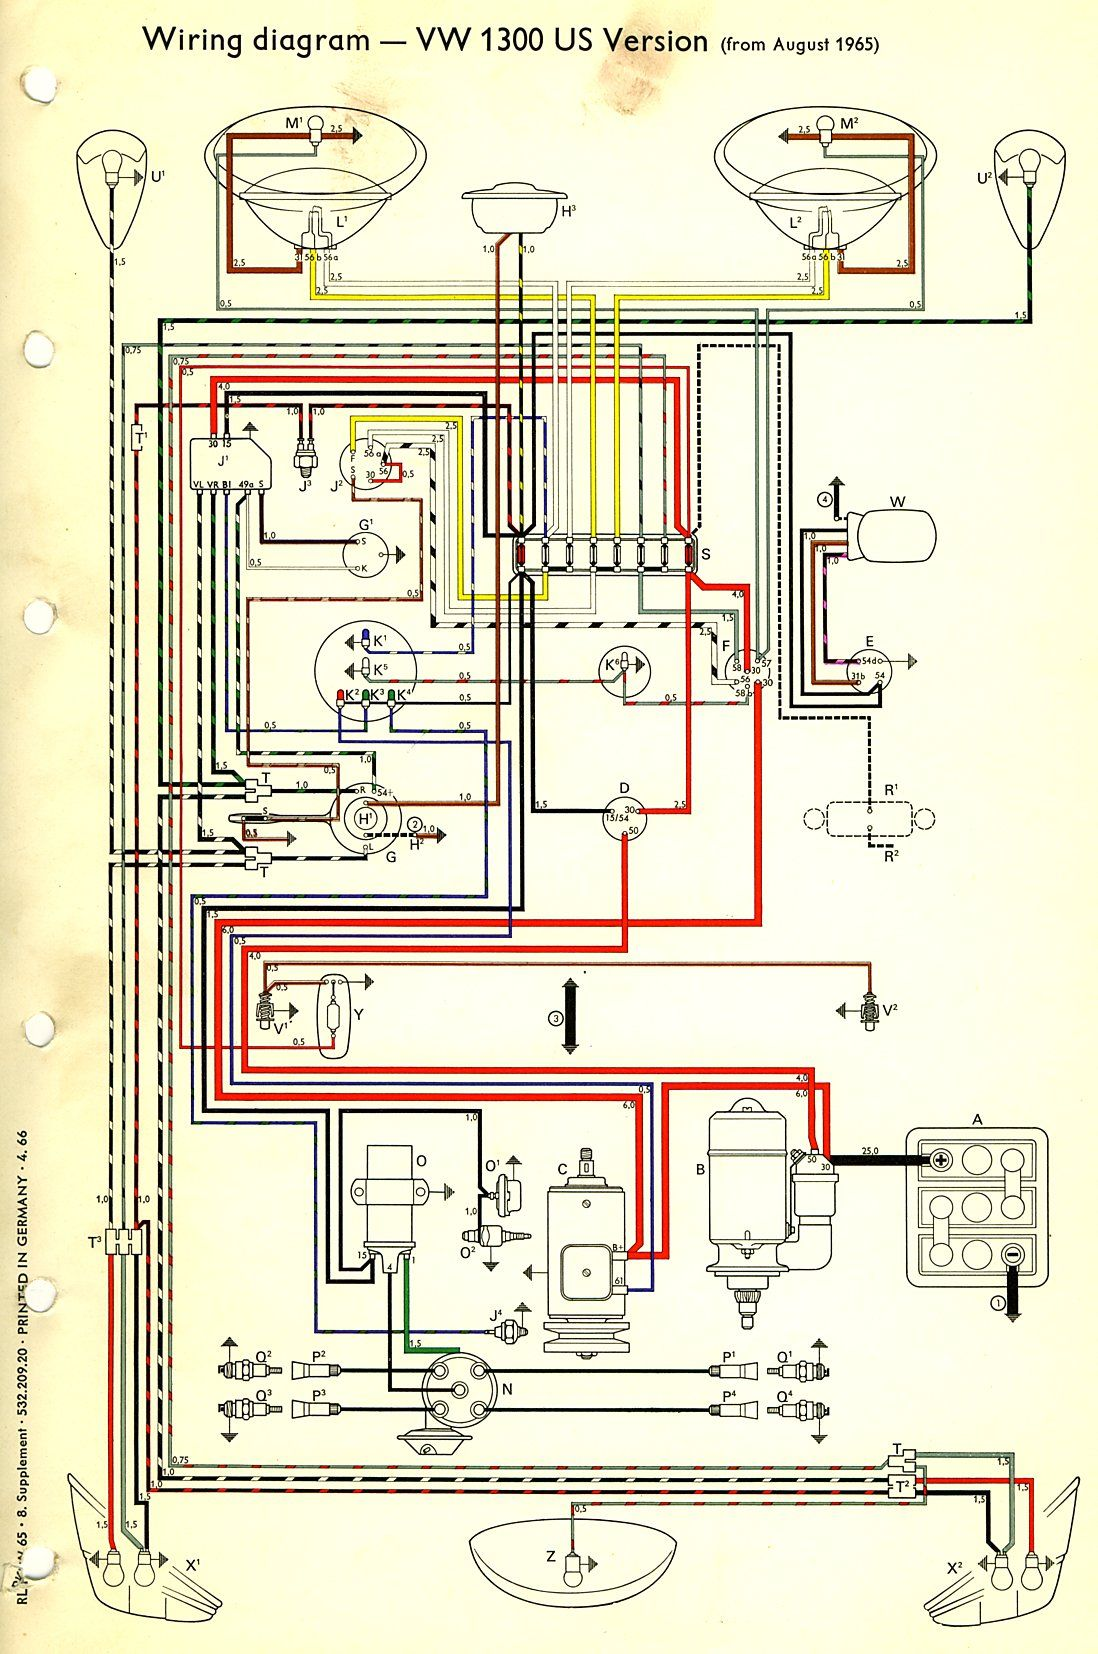 dune buggy wiring schematic google search 69 bug or 69 dune rh pinterest com 68 VW Wiring Diagram 1974 VW Alternator Wiring Diagram